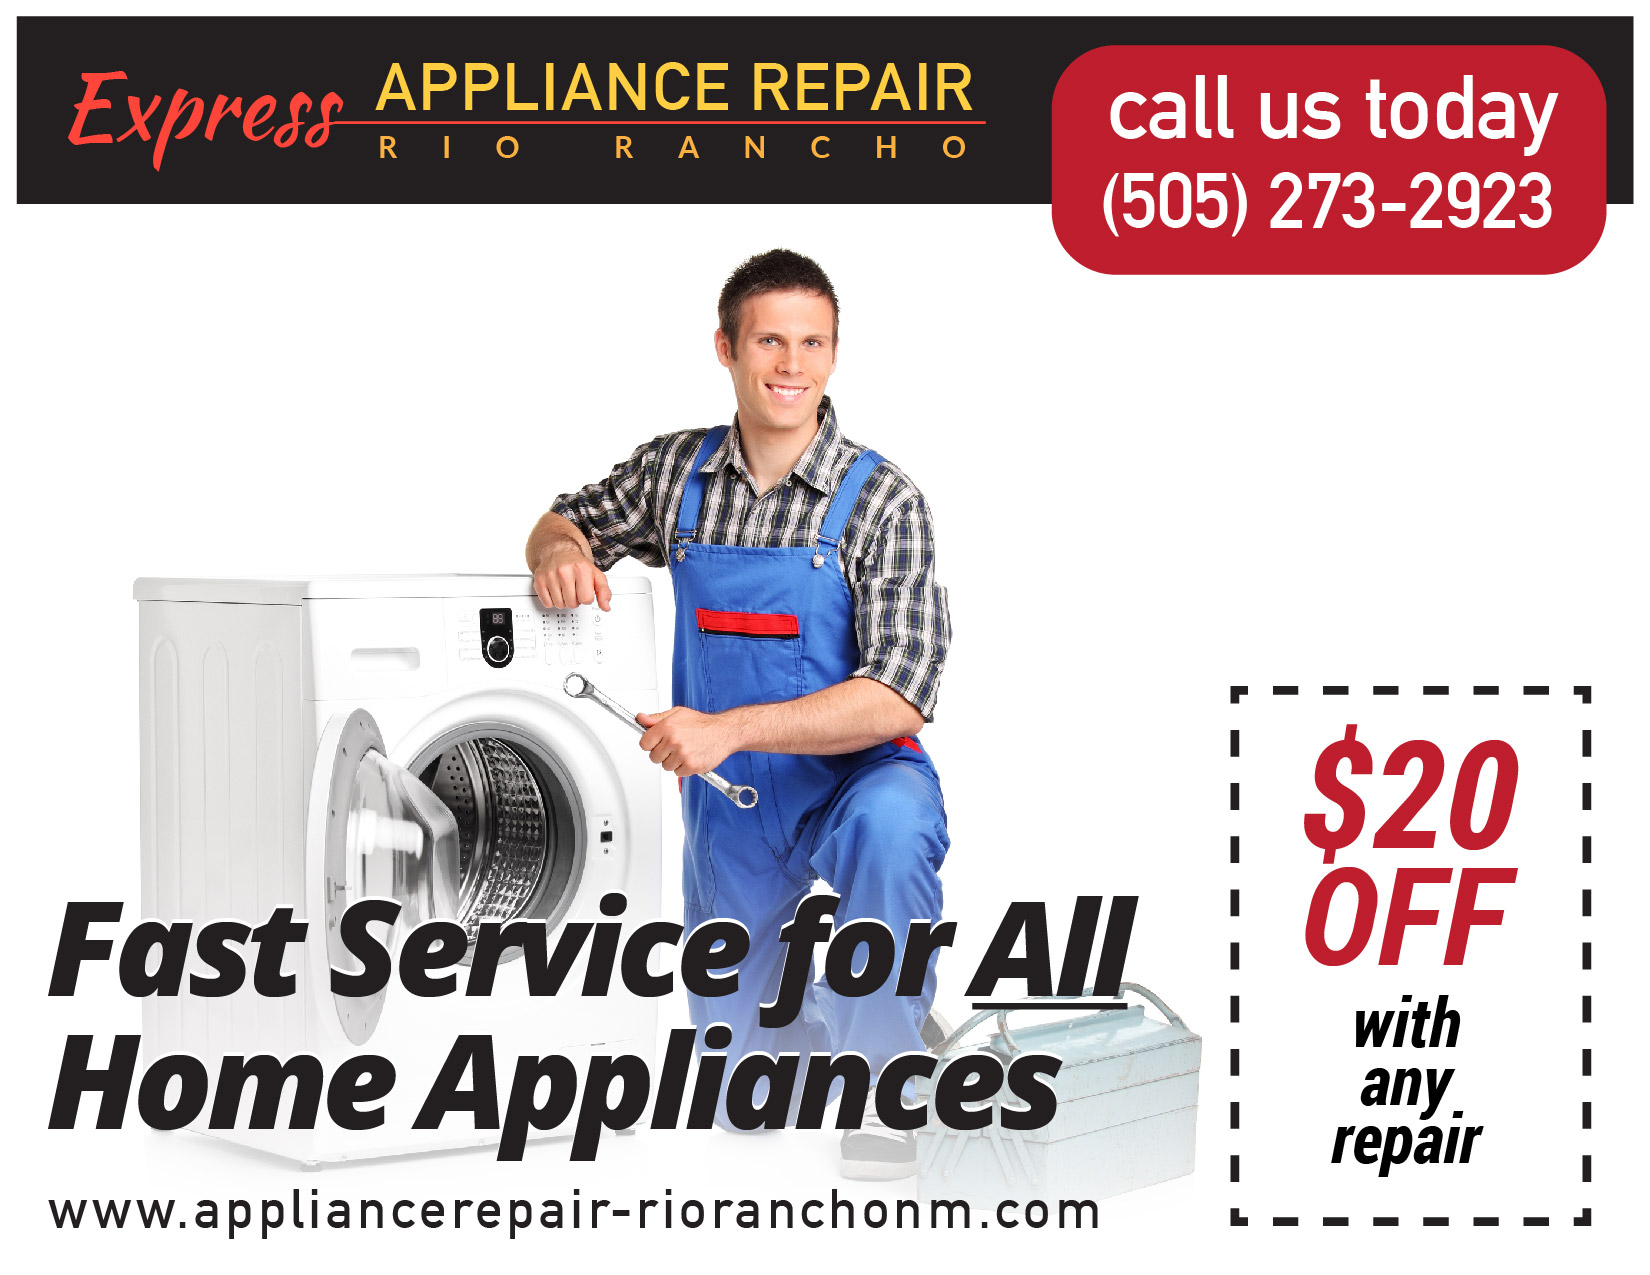 Express appliance repair of rio rancho 505 273 2923 - Home appliances that we thought ...